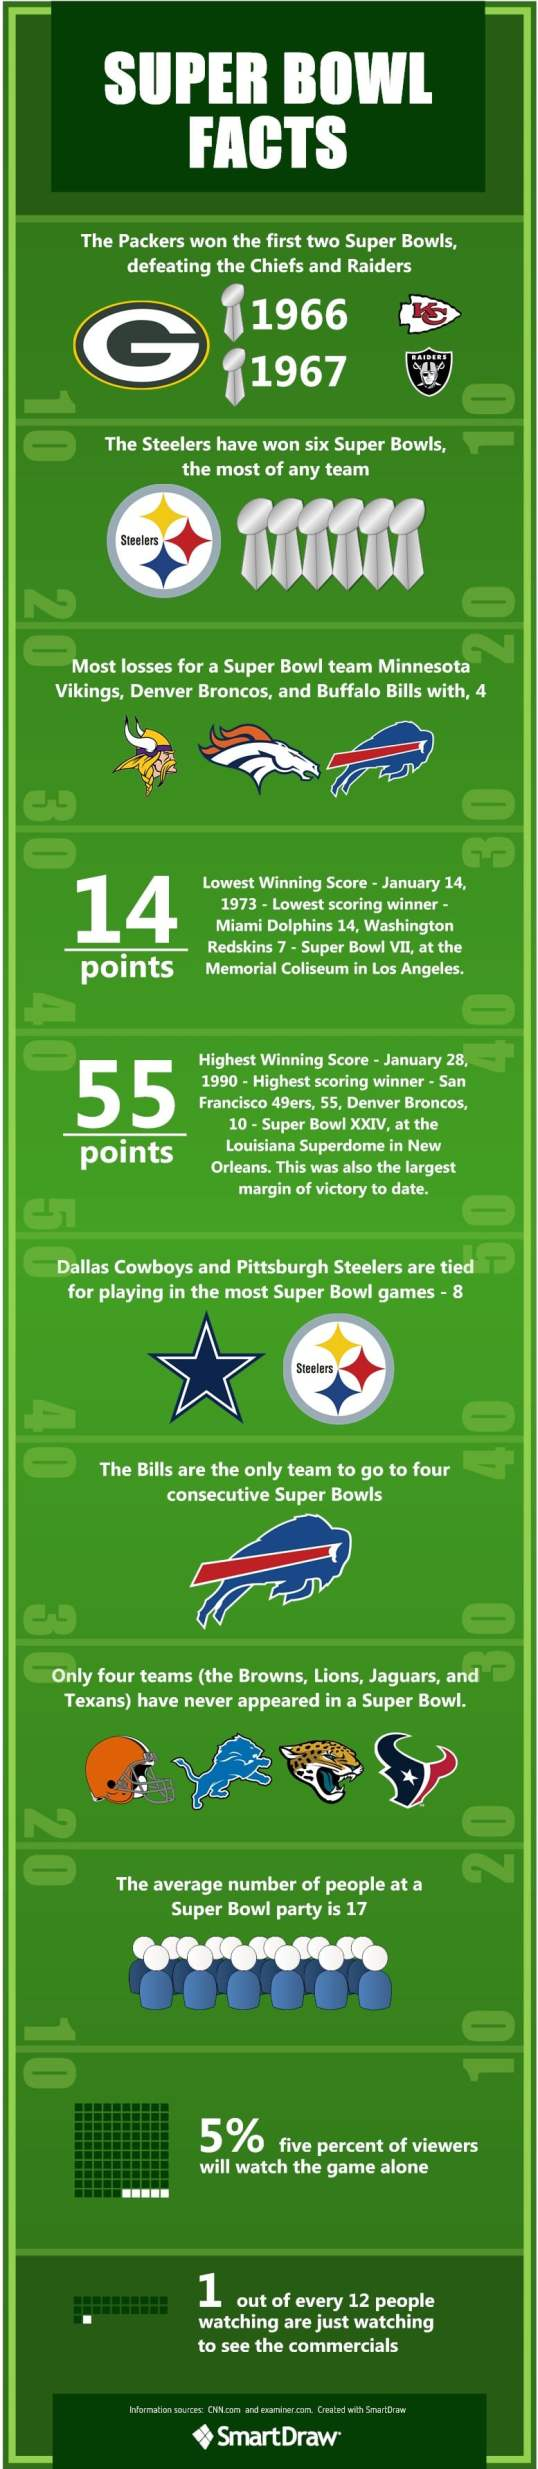 Super Bowl facts infographic